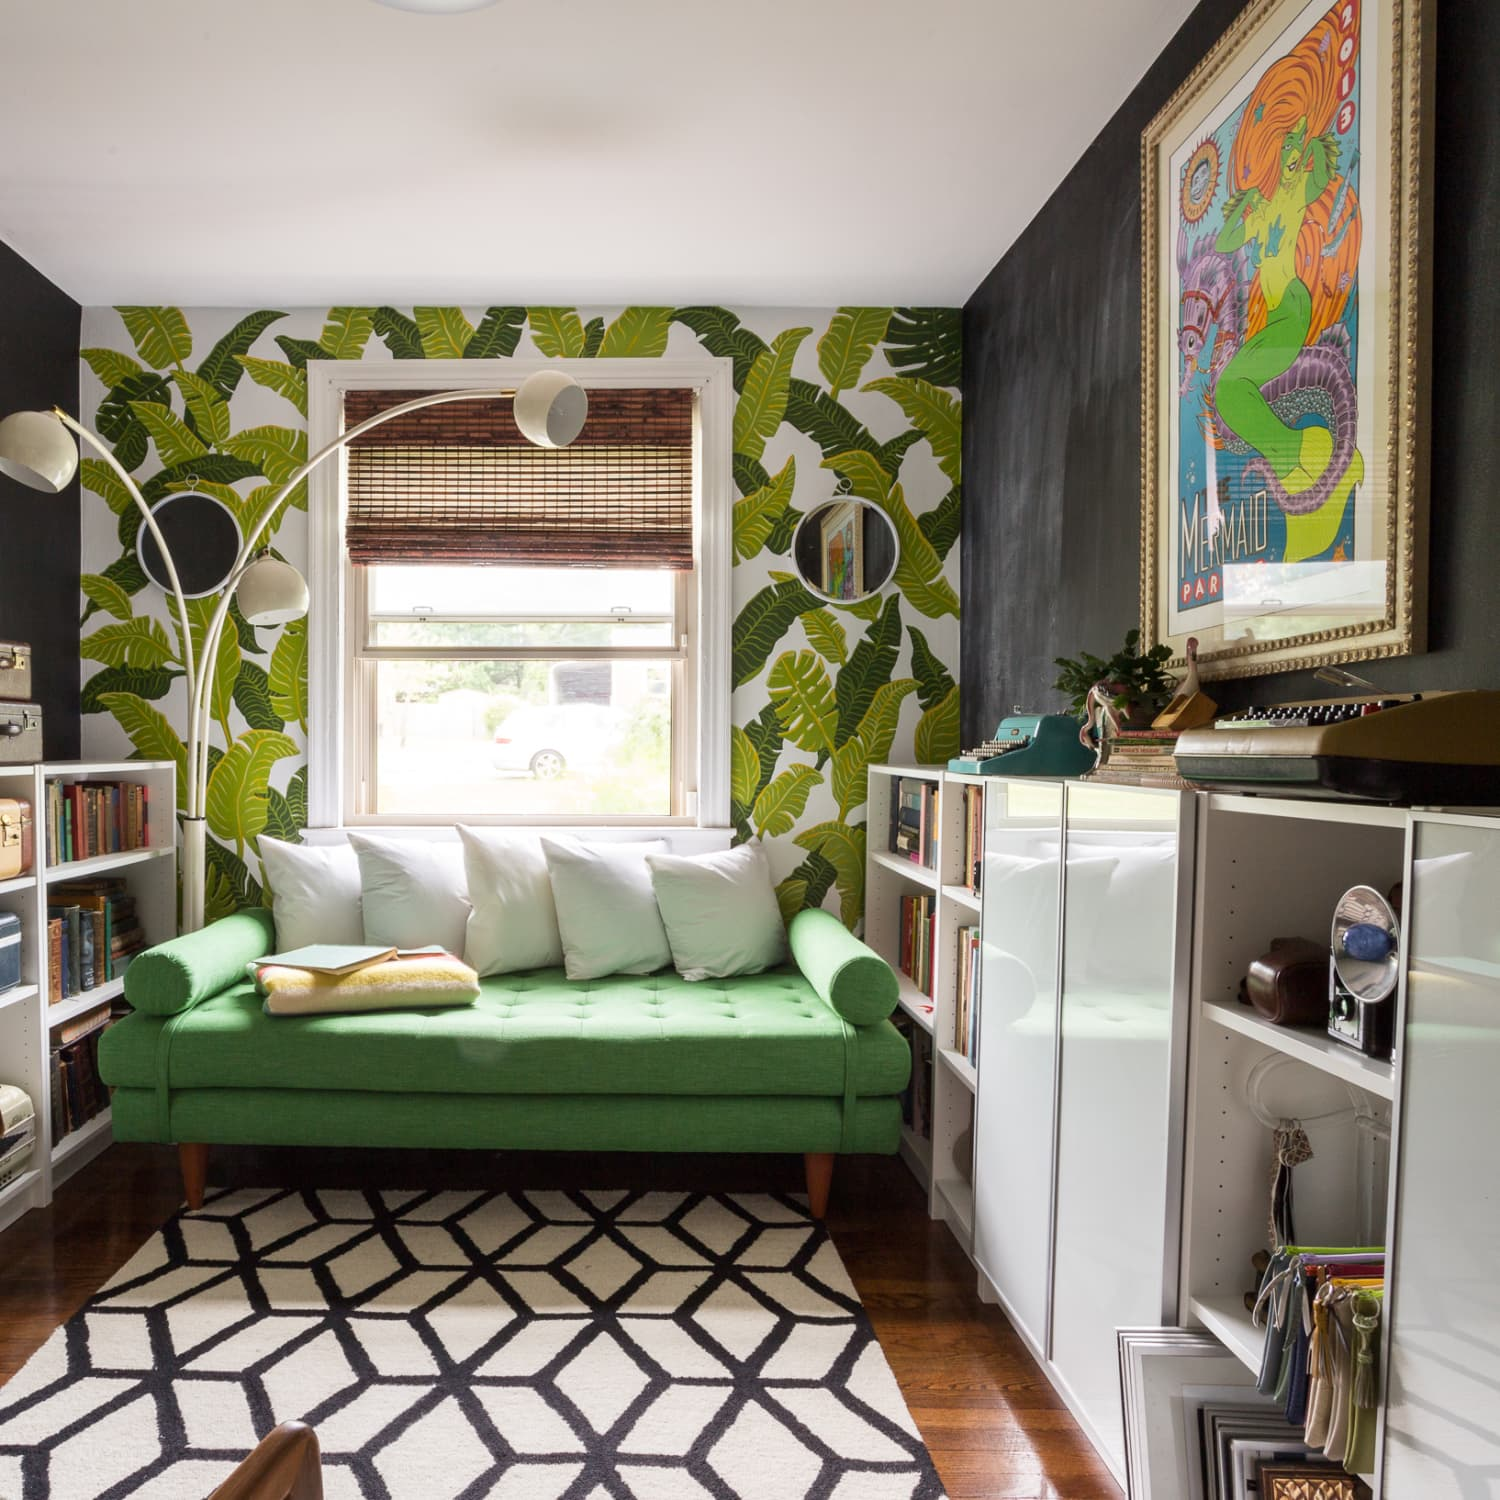 How To Decorate A Small Space With Wallpaper Apartment Therapy